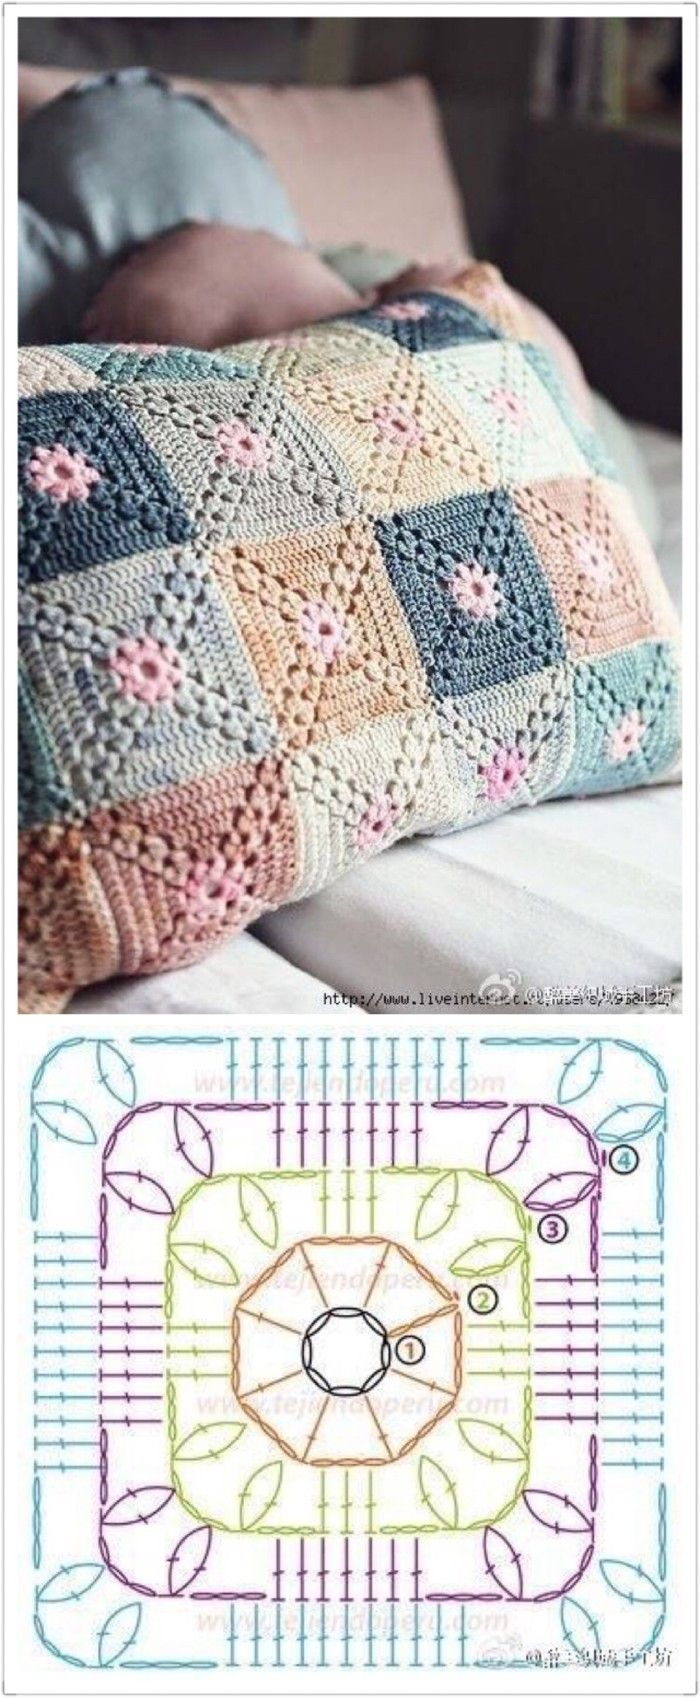 Crochet granny square baby blanket pillow cushion afghan throw blanket